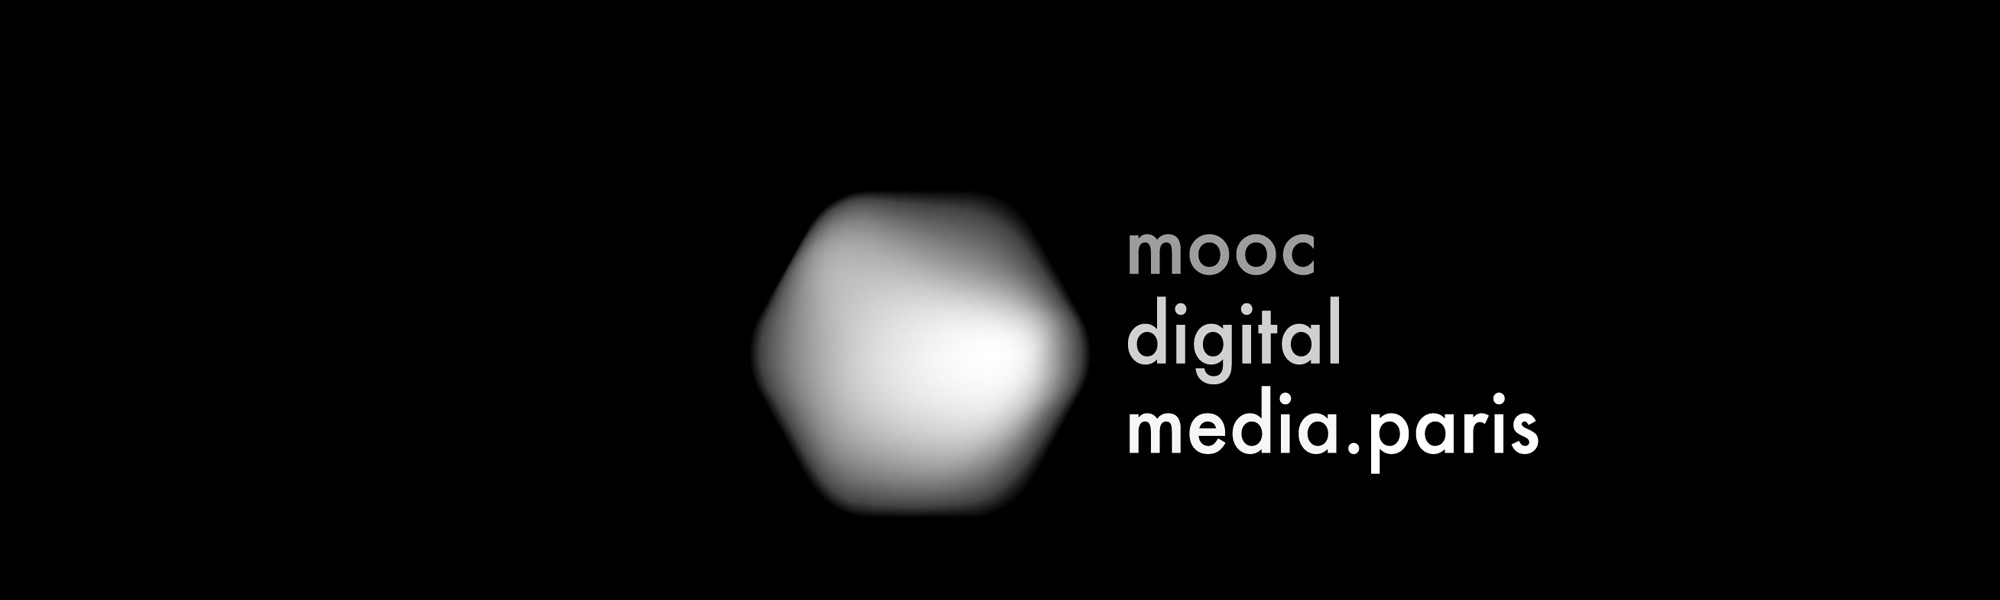 Art2M et l'EPSAA annoncent le lancement du MOOC Digital Media